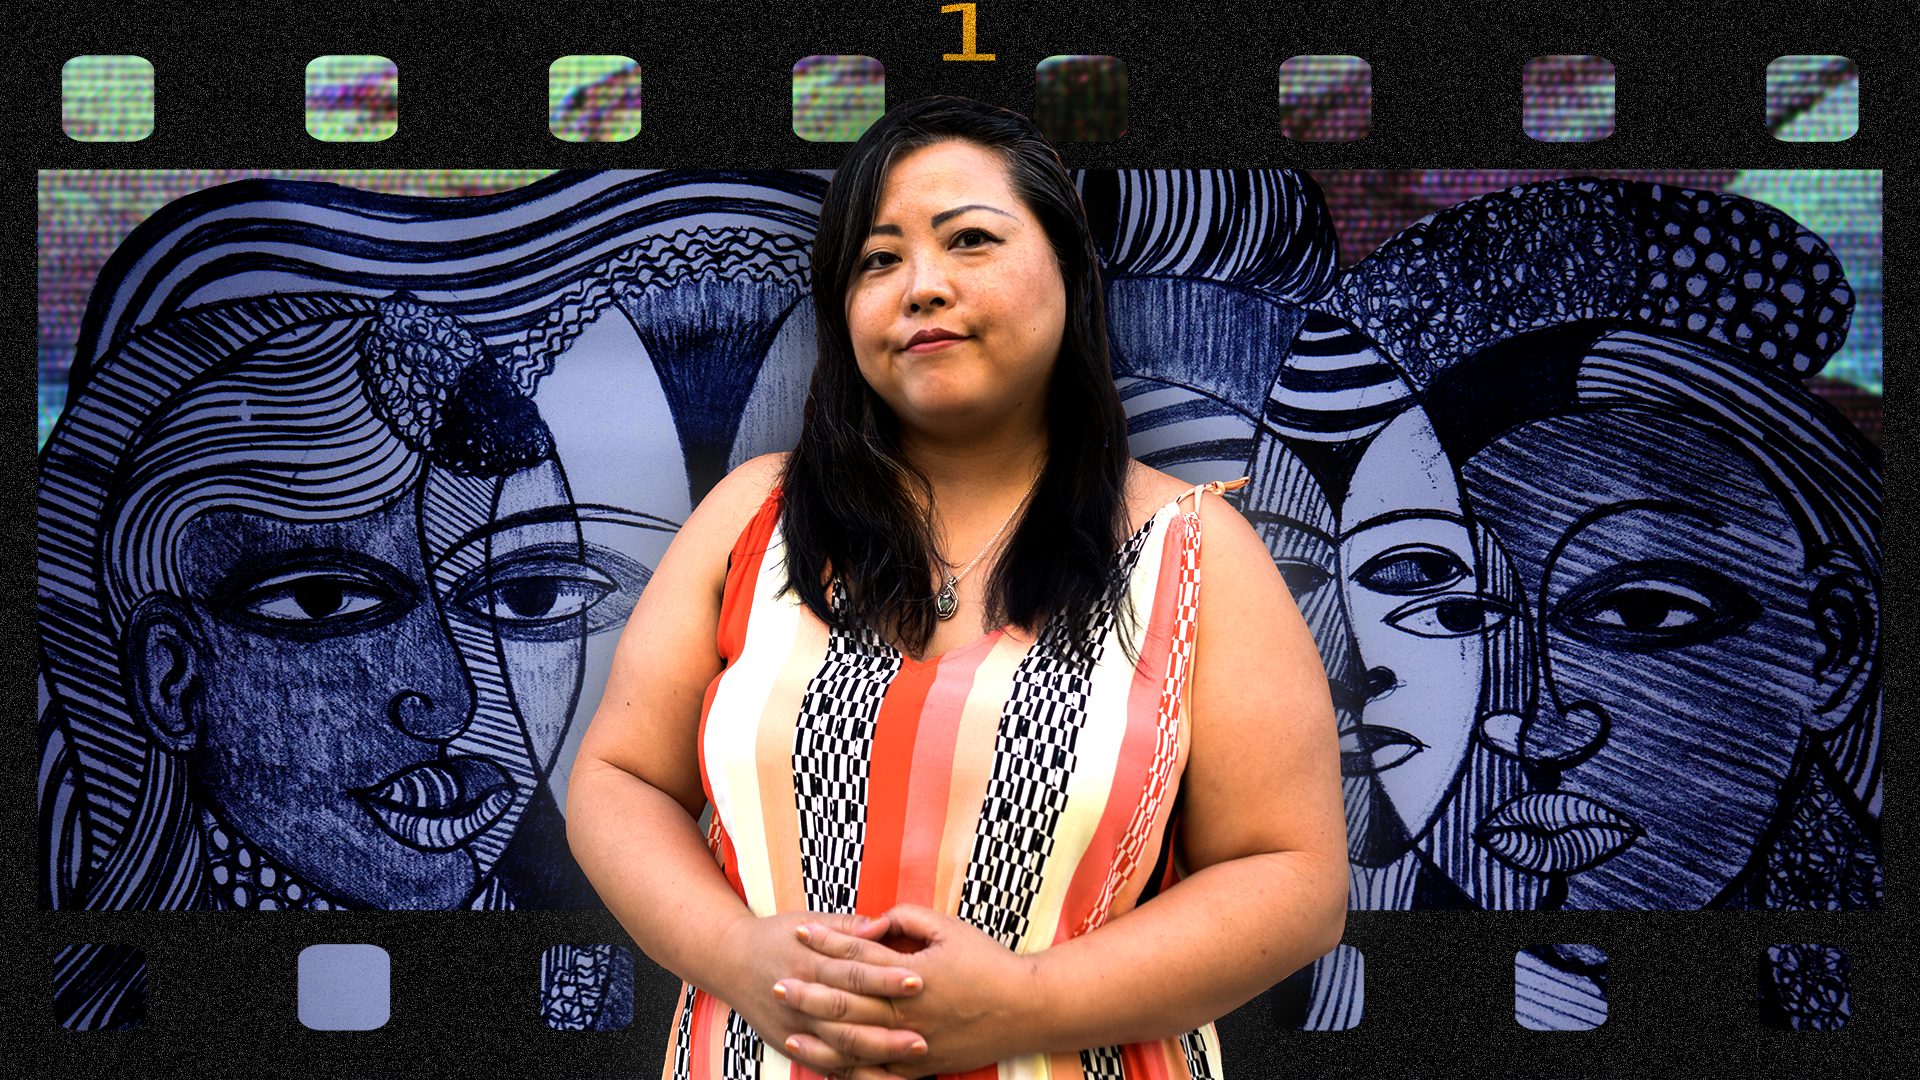 """Portrait collage. Sarah-Ji looks directly at the camera with a slight smile on her face. She is wearing a white, salmon, orange, and patterned colored dress with her hands interlocked in front of her. In the background is a television glitch graphic with the painting titled """"Faces (Faces a la Picasso)"""" created by the artist, scholar and activist Margaret T. Burroughs. The image is framed by a 35mm film strip. Photo and collage were created by Ireashia Bennett. All other images were sourced online."""